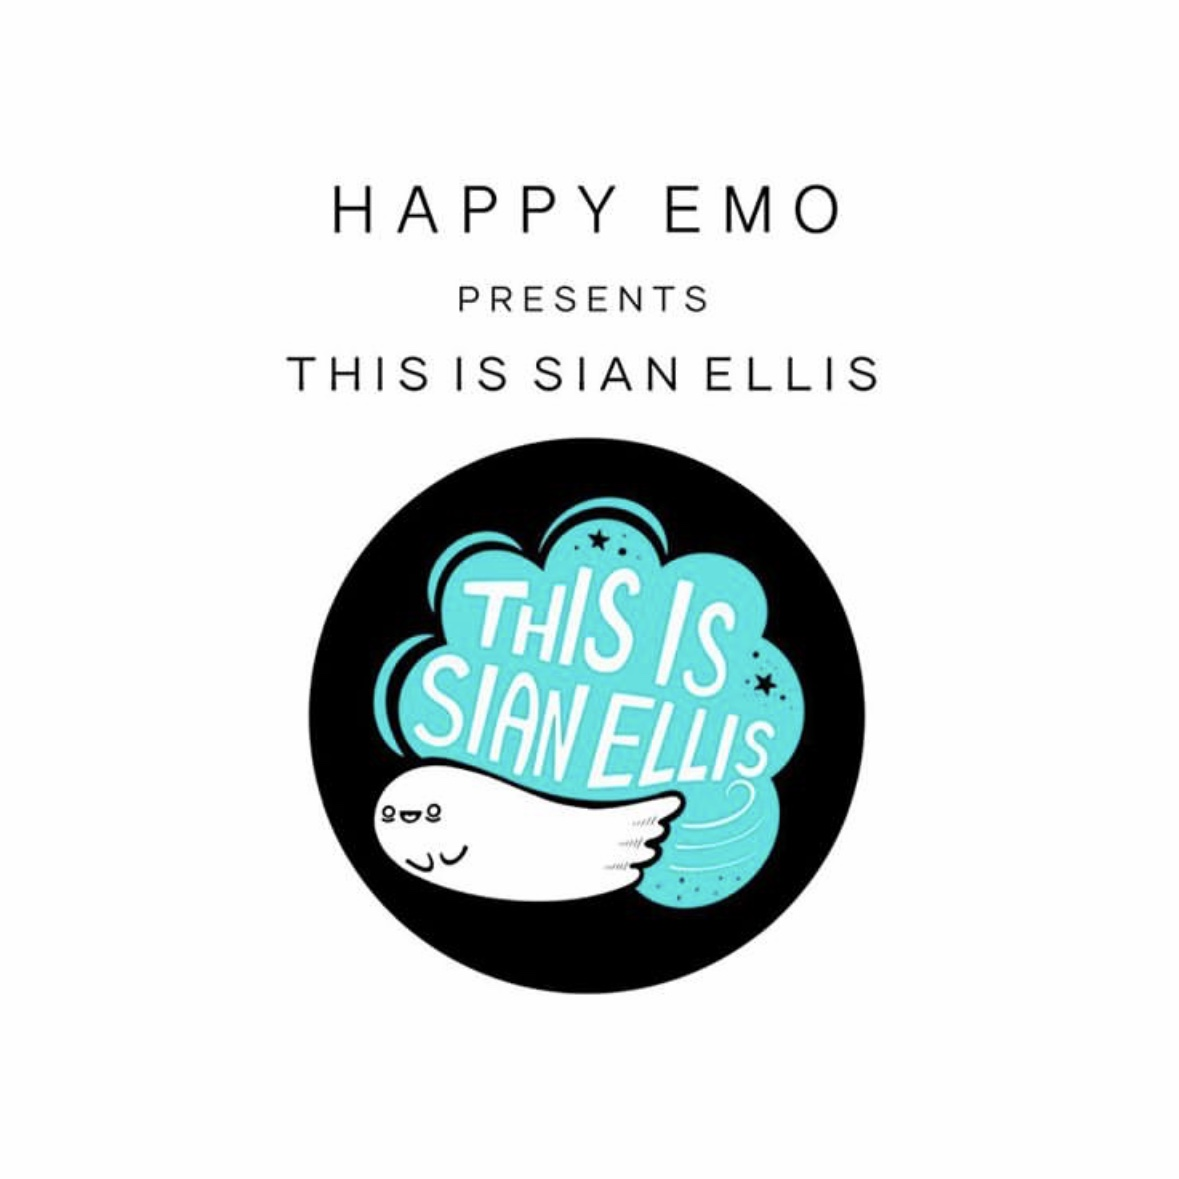 New Stockist Announcement: Happy Emo UK